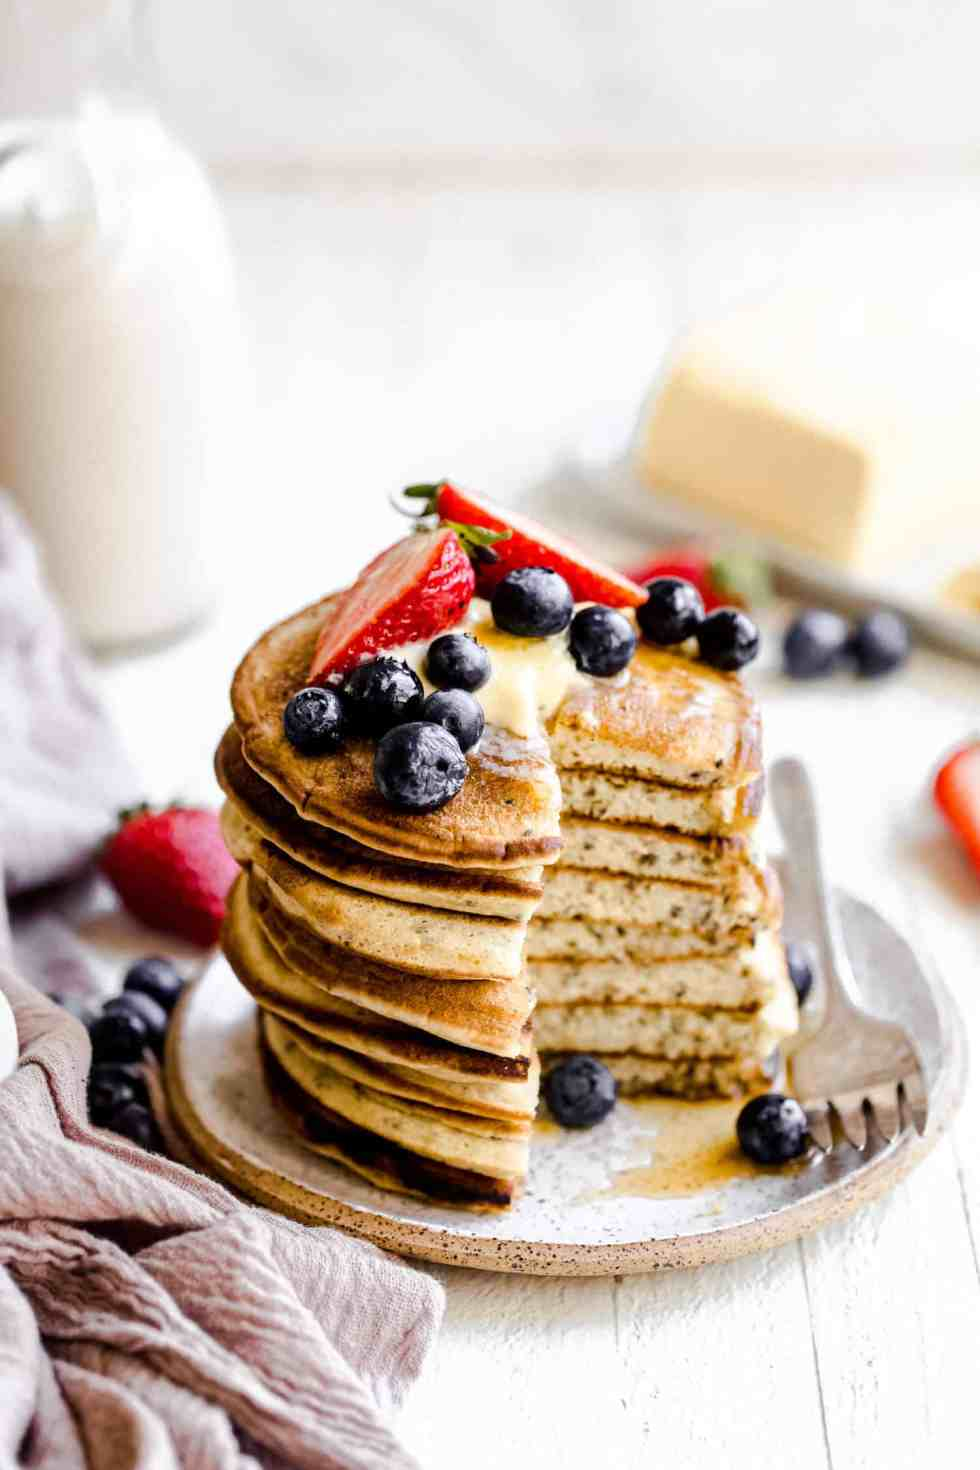 stack of pancakes with berries on top and a fork on the side